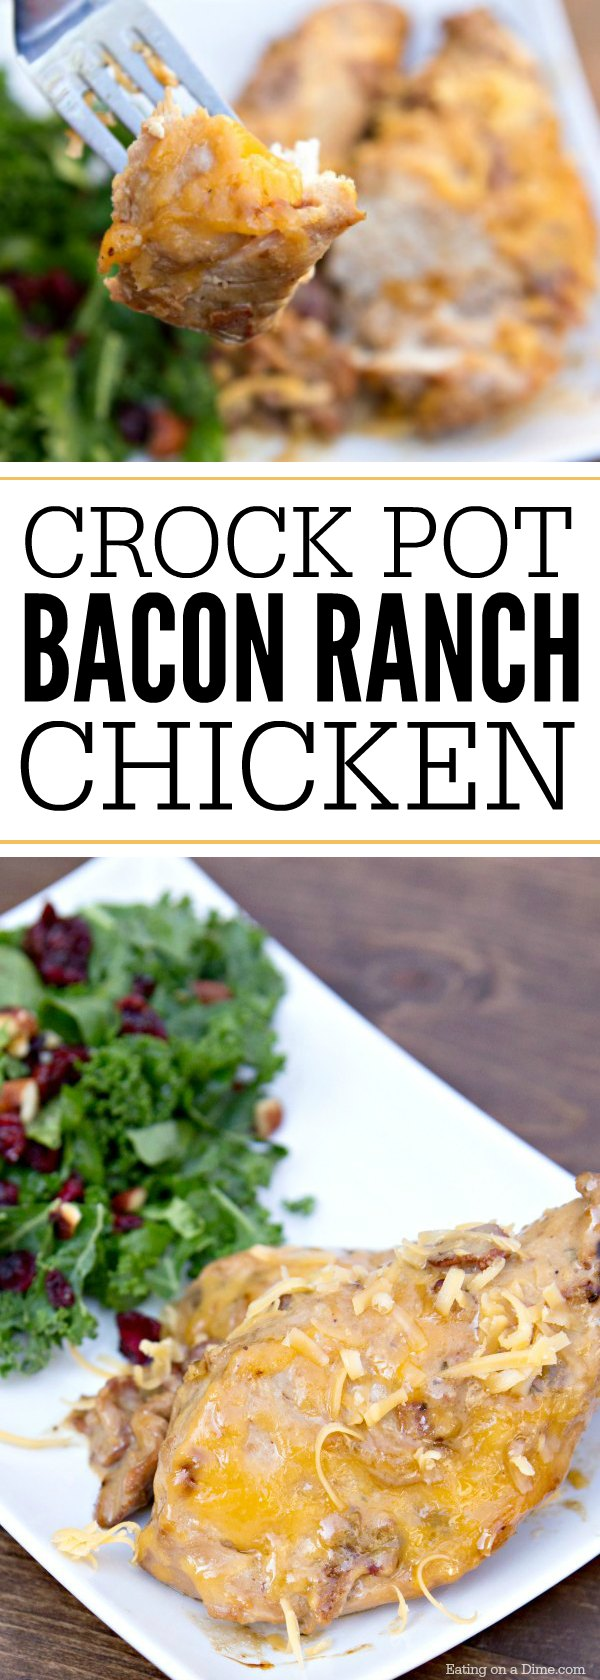 Try this easy Crock Pot Cheesy Bacon Chicken Recipe. It is simple and packed with flavor. You will be shocked how delicious this Ranch Bacon Chicken crock pot recipe is! #eatingonadime #crockpotrecipes #dinnerrecipes